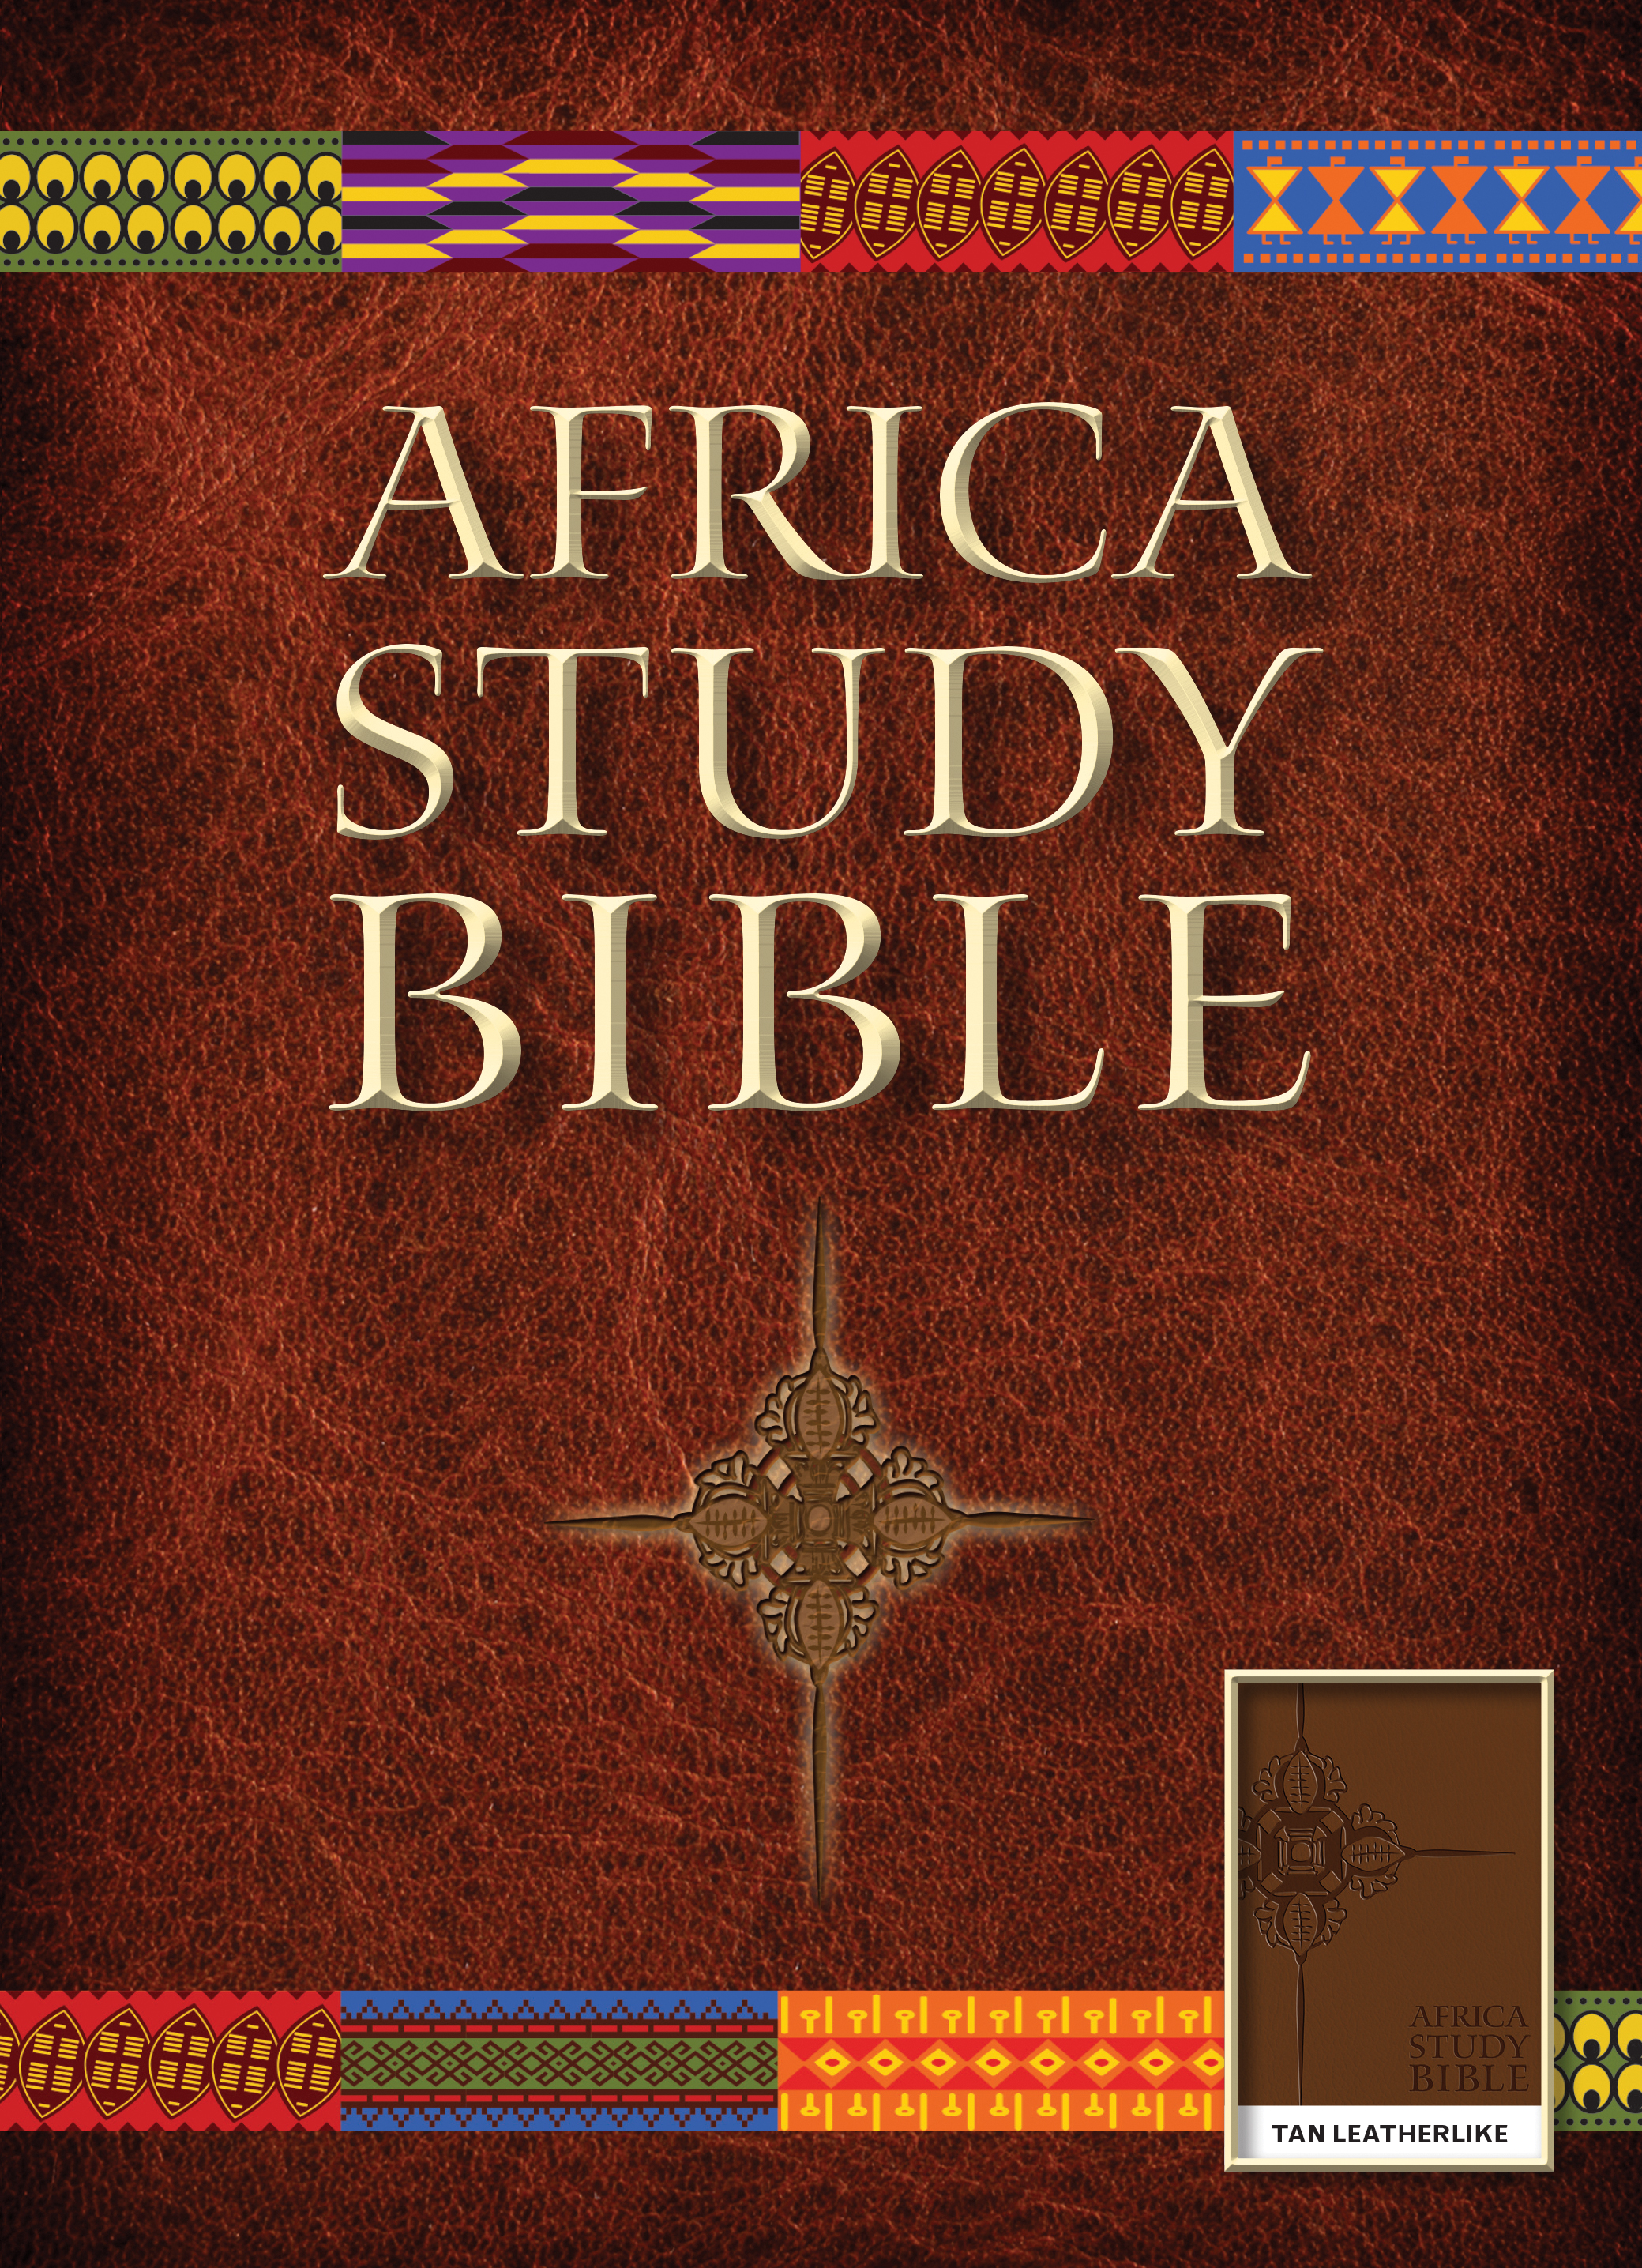 Africa Study Bible, NLT (LeatherLike, Tan)